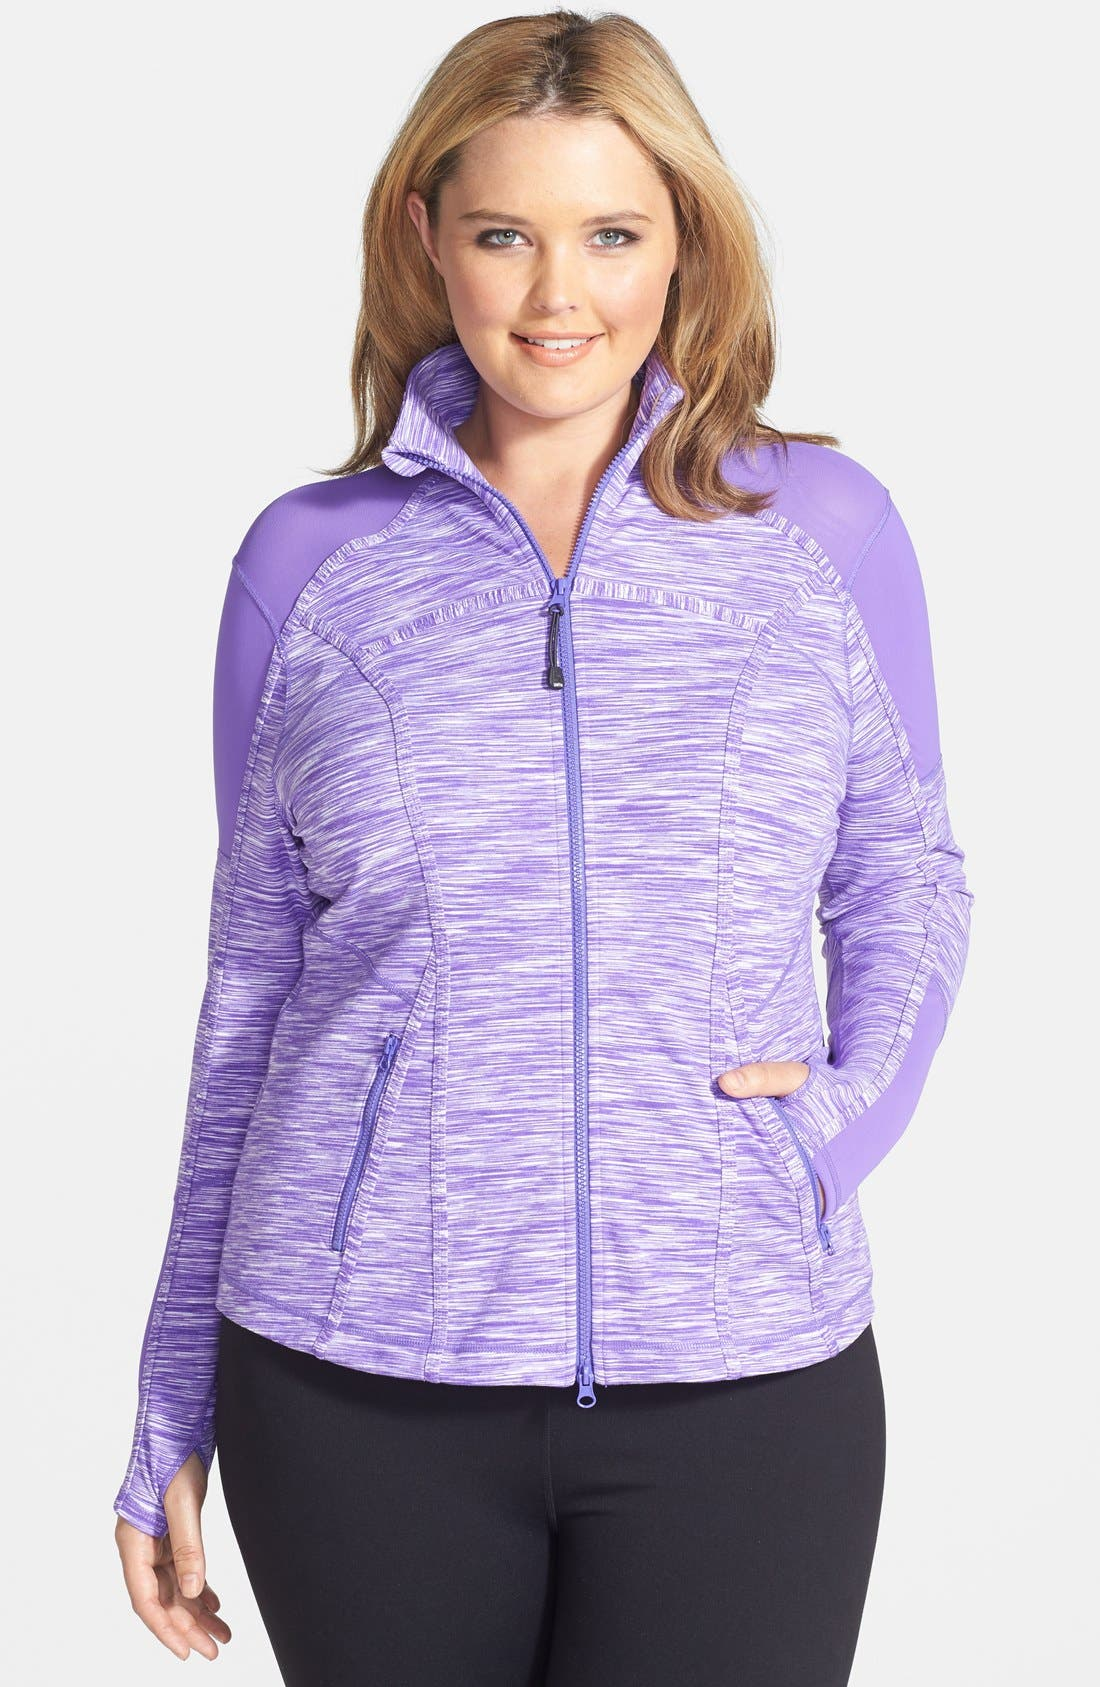 Alternate Image 1 Selected - Zella 'Power' Jacket (Plus Size)